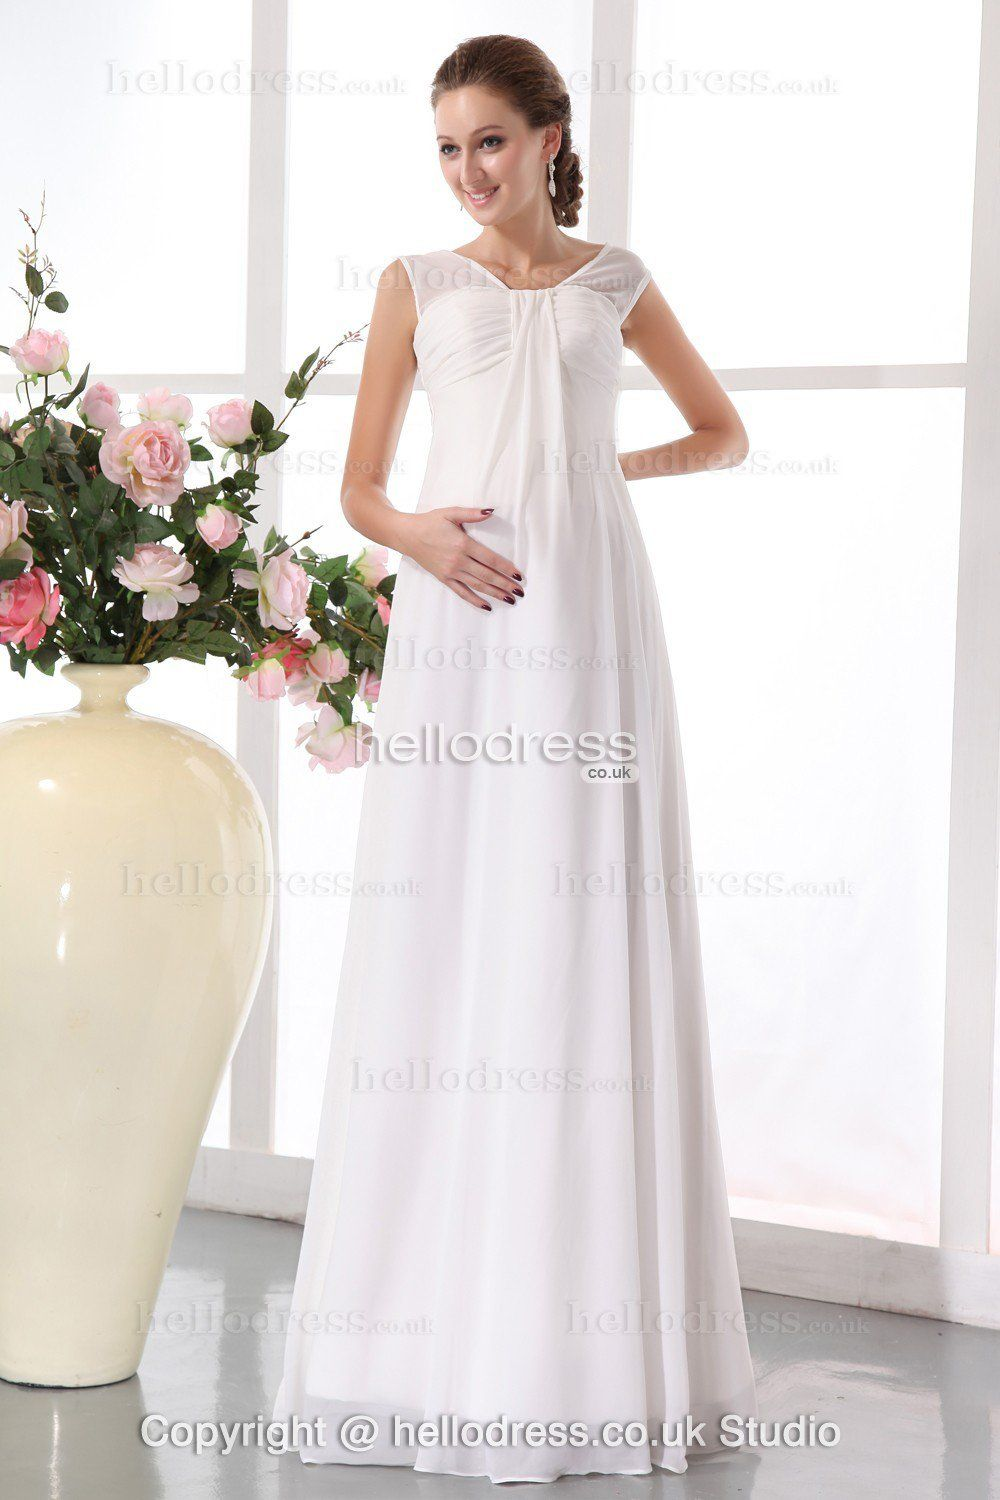 Fantastic Wedding Gown For Pregnant Pictures - Wedding Dress Ideas ...